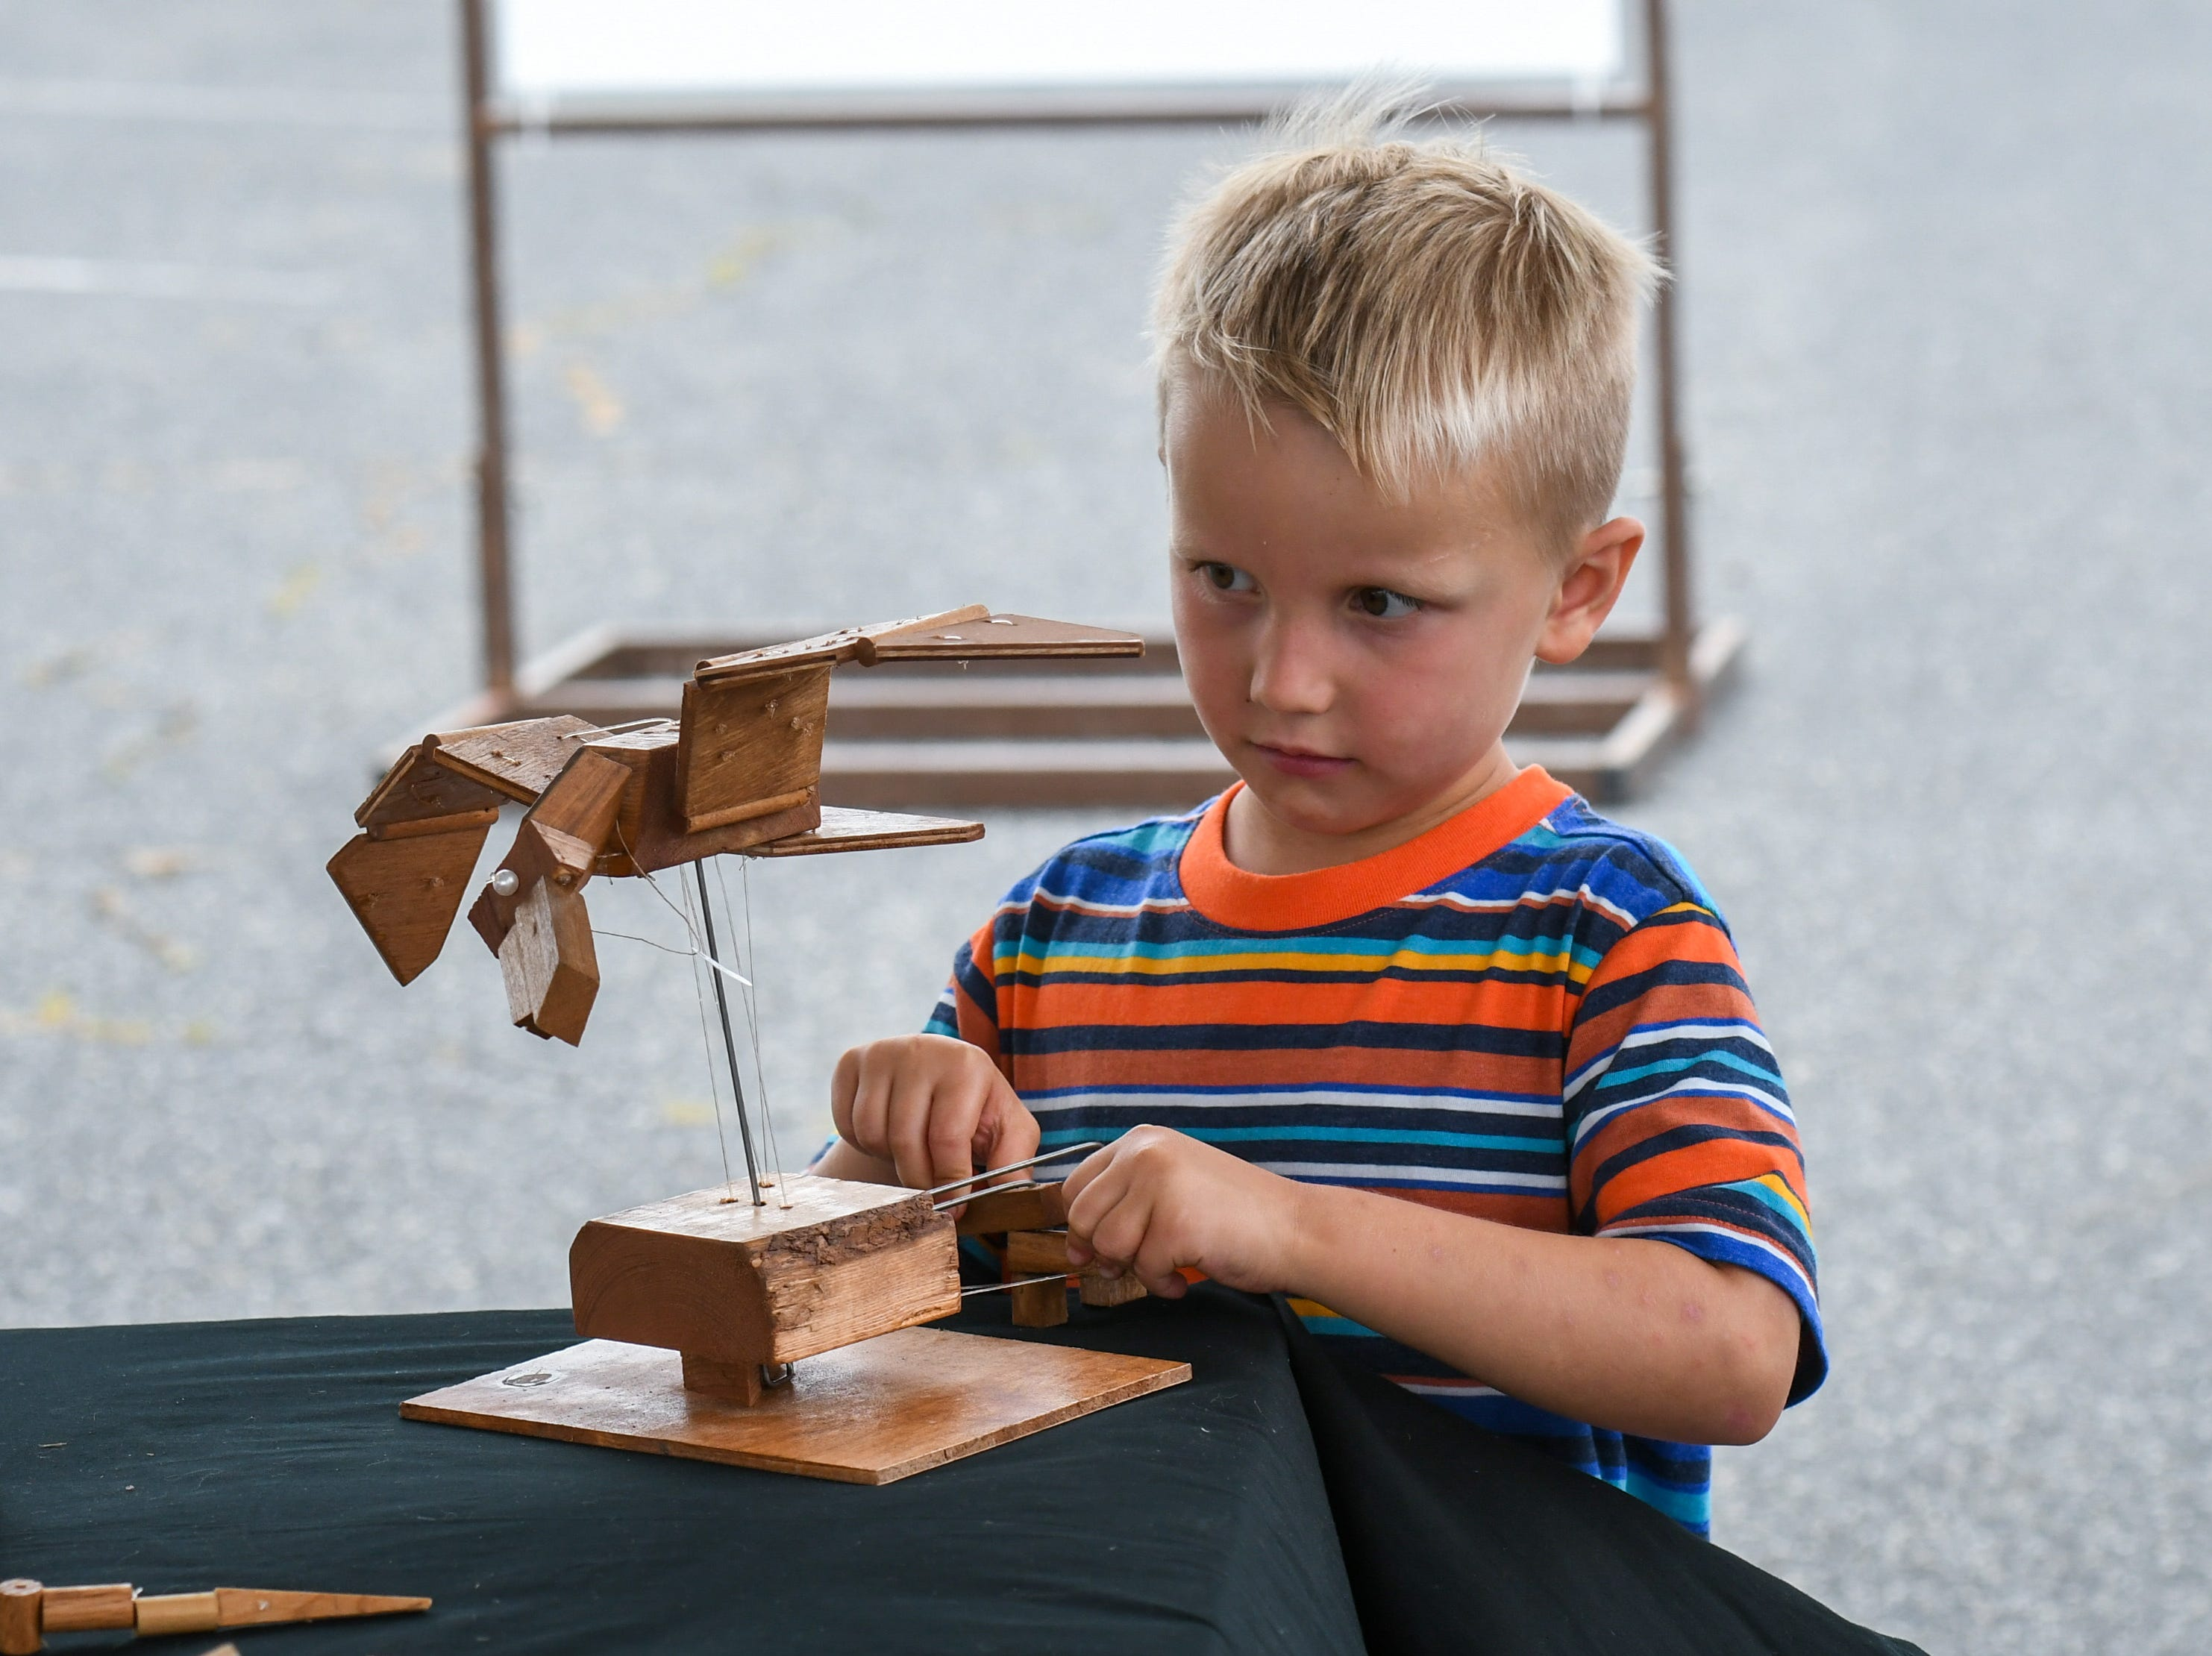 4-year-old Alexander Pope checks out one of the Jeghetto group's puppets at the National Folk Festival in Salisbury on Saturday, Sept. 8.